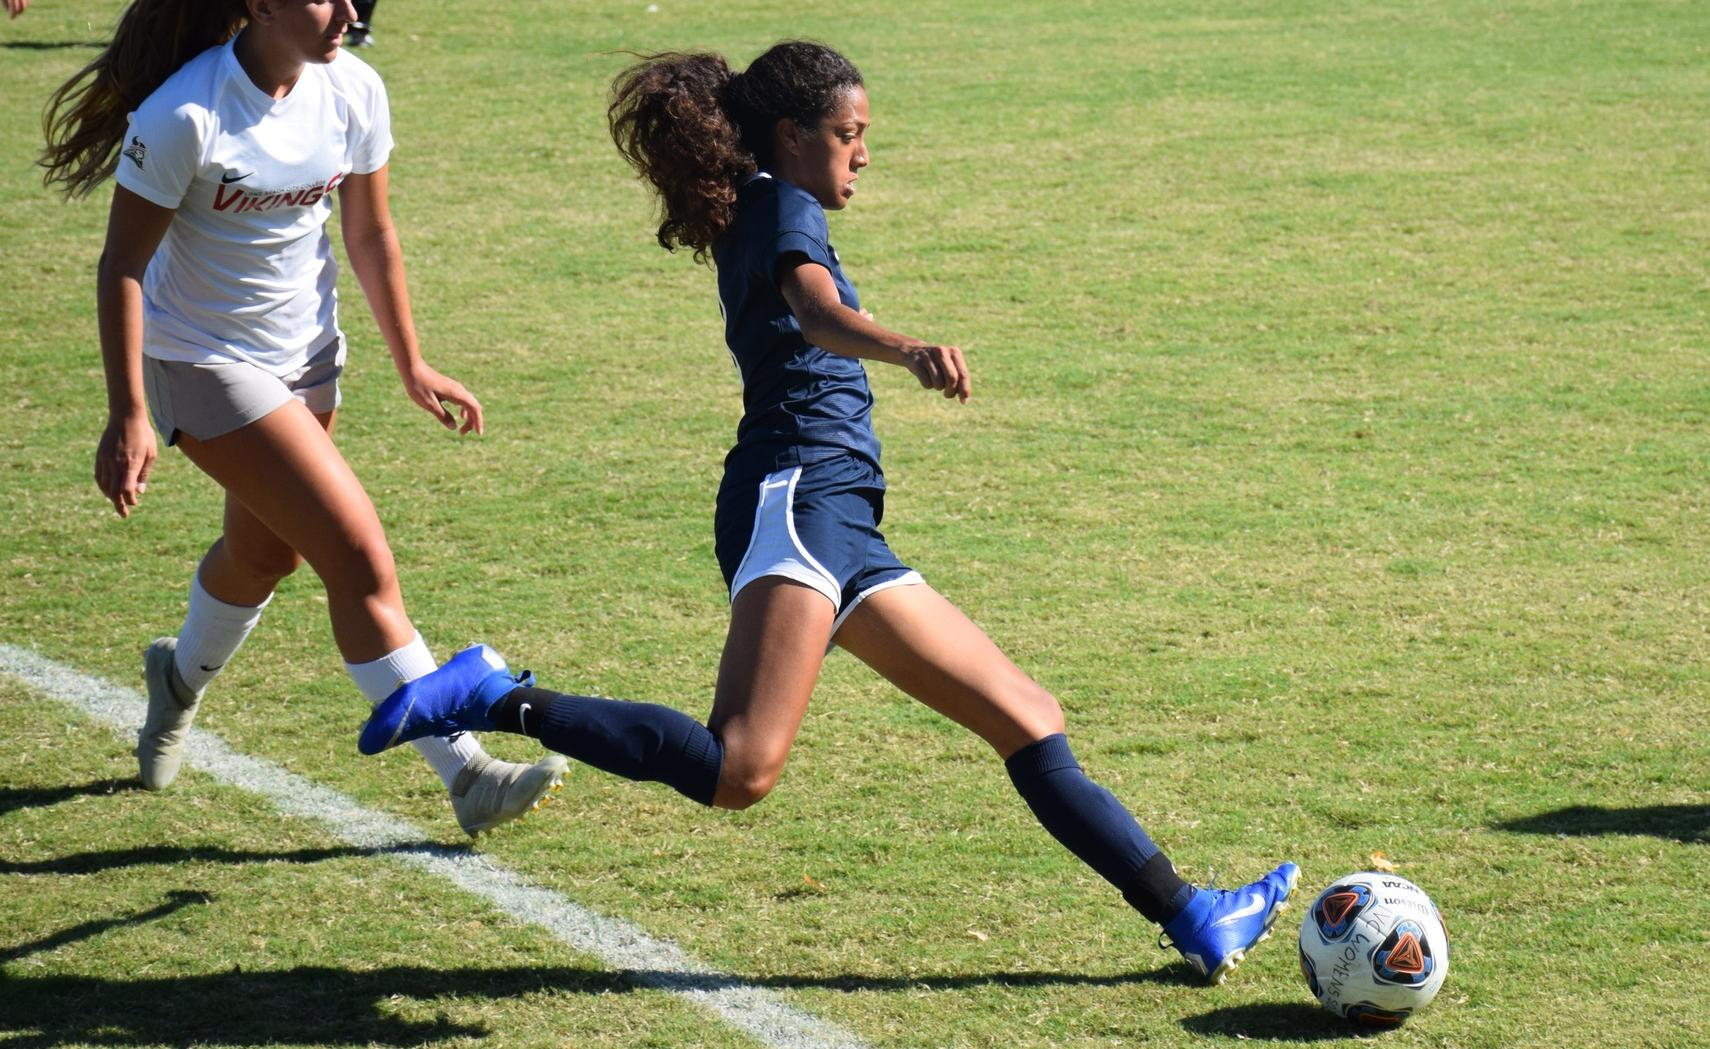 Women's soccer team can't get past Long Beach City